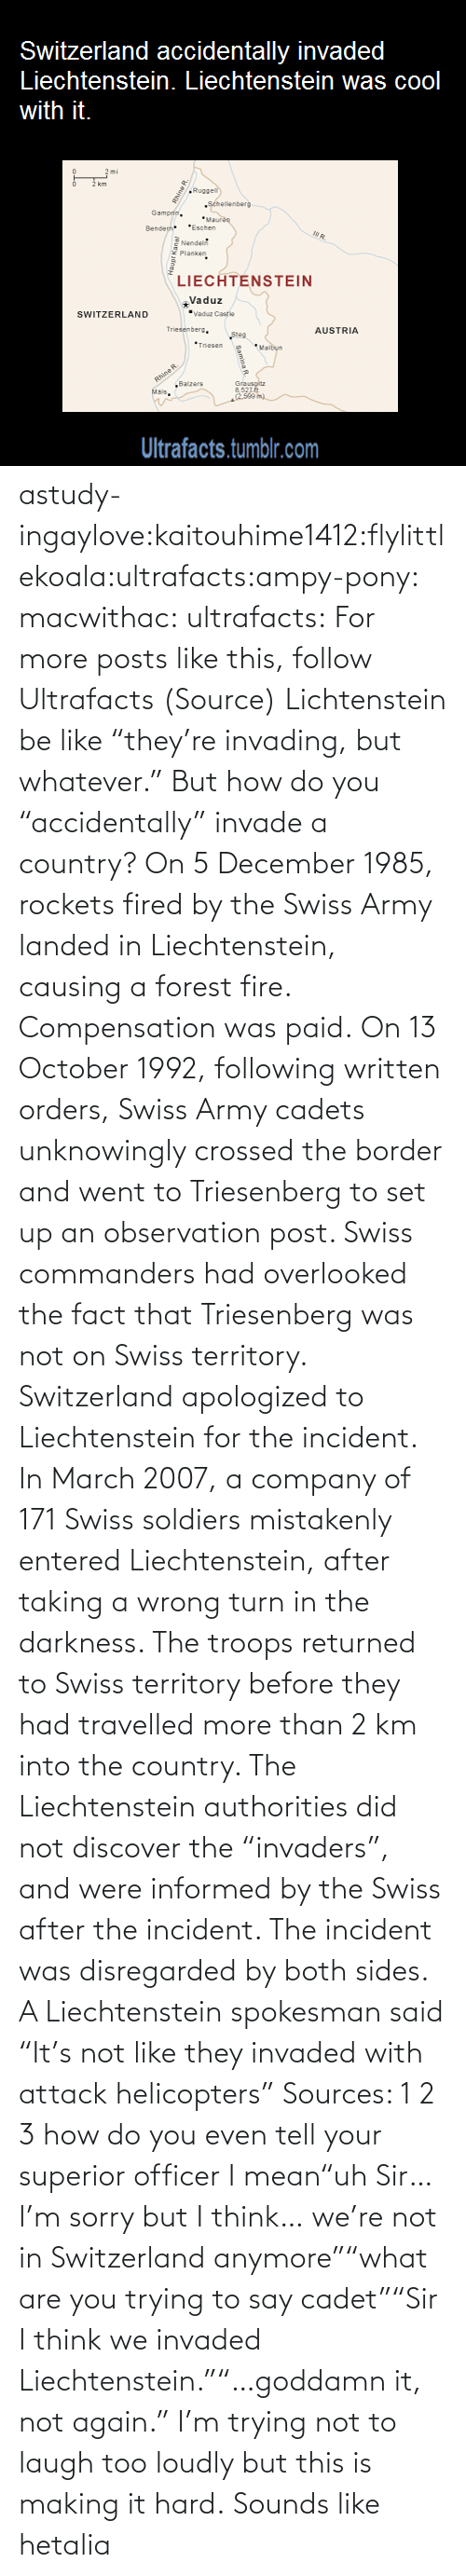 """But Whatever: Switzerland accidentally invaded  Liechtenstein. Liechtenstein was cool  with it.  km  Ruggell  Séhellenberg  Gampfe.  *Maure  *Eschen  Bendern  Nendel  Planken  LIECHTENSTEIN  Vaduz  """"Vaduz Castie  SWITZERLAND  Triesenbers.  AUSTRIA  Steg  *Triesen  *Malbun  Rhine R.  """"Balzers  Mals.  Grausoltz  8,521  2.500 m)  Ultrafacts.tumblr.com  Haupt Kanal  Samina R astudy-ingaylove:kaitouhime1412:flylittlekoala:ultrafacts:ampy-pony:  macwithac:  ultrafacts:  For more posts like this, follow Ultrafacts (Source)  Lichtenstein be like """"they're invading, but whatever.""""  But how do you """"accidentally"""" invade a country?  On 5 December 1985, rockets fired by the Swiss Army landed in Liechtenstein, causing a forest fire. Compensation was paid. On 13 October 1992, following written orders, Swiss Army cadets unknowingly crossed the border and went to Triesenberg to set up an observation post. Swiss commanders had overlooked the fact that Triesenberg was not on Swiss territory. Switzerland apologized to Liechtenstein for the incident. In March 2007, a company of 171 Swiss soldiers mistakenly entered Liechtenstein, after taking a wrong turn in the darkness. The troops returned to Swiss territory before they had travelled more than 2km into the country. The Liechtenstein authorities did not discover the """"invaders"""", and were informed by the Swiss after the incident. The incident was disregarded by both sides. A Liechtenstein spokesman said """"It's not like they invaded with attack helicopters"""" Sources: 1 2 3  how do you even tell your superior officer I mean""""uh Sir… I'm sorry but I think… we're not in Switzerland anymore""""""""what are you trying to say cadet""""""""Sir I think we invaded Liechtenstein.""""""""…goddamn it, not again.""""  I'm trying not to laugh too loudly but this is making it hard.   Sounds like hetalia"""